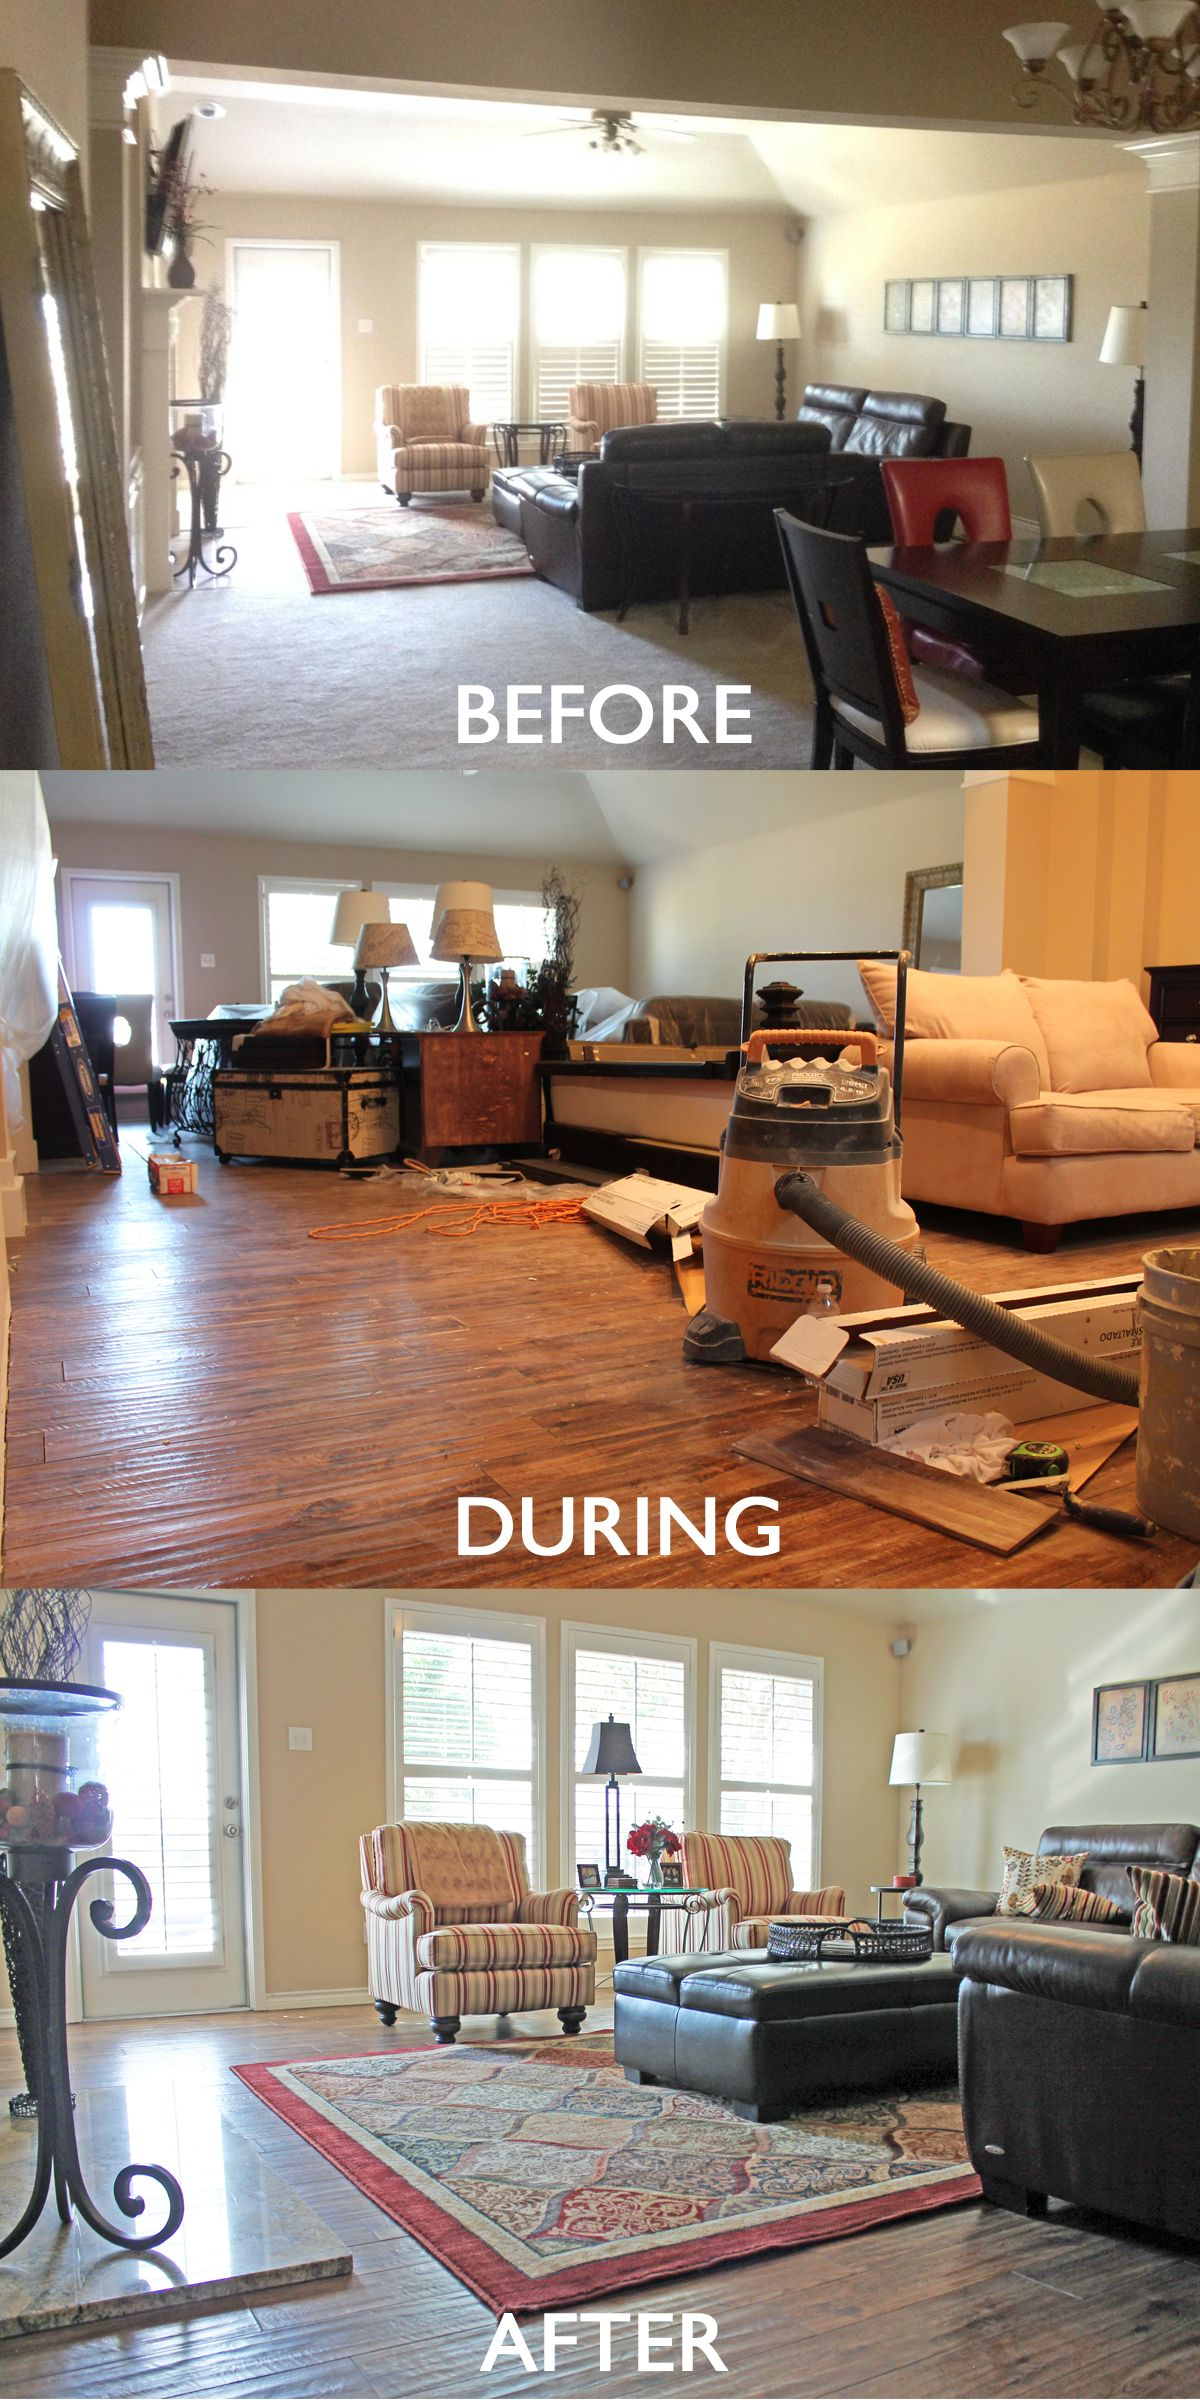 Living Room Renovation Before And After living room remodel before and after. from carpet to wood look